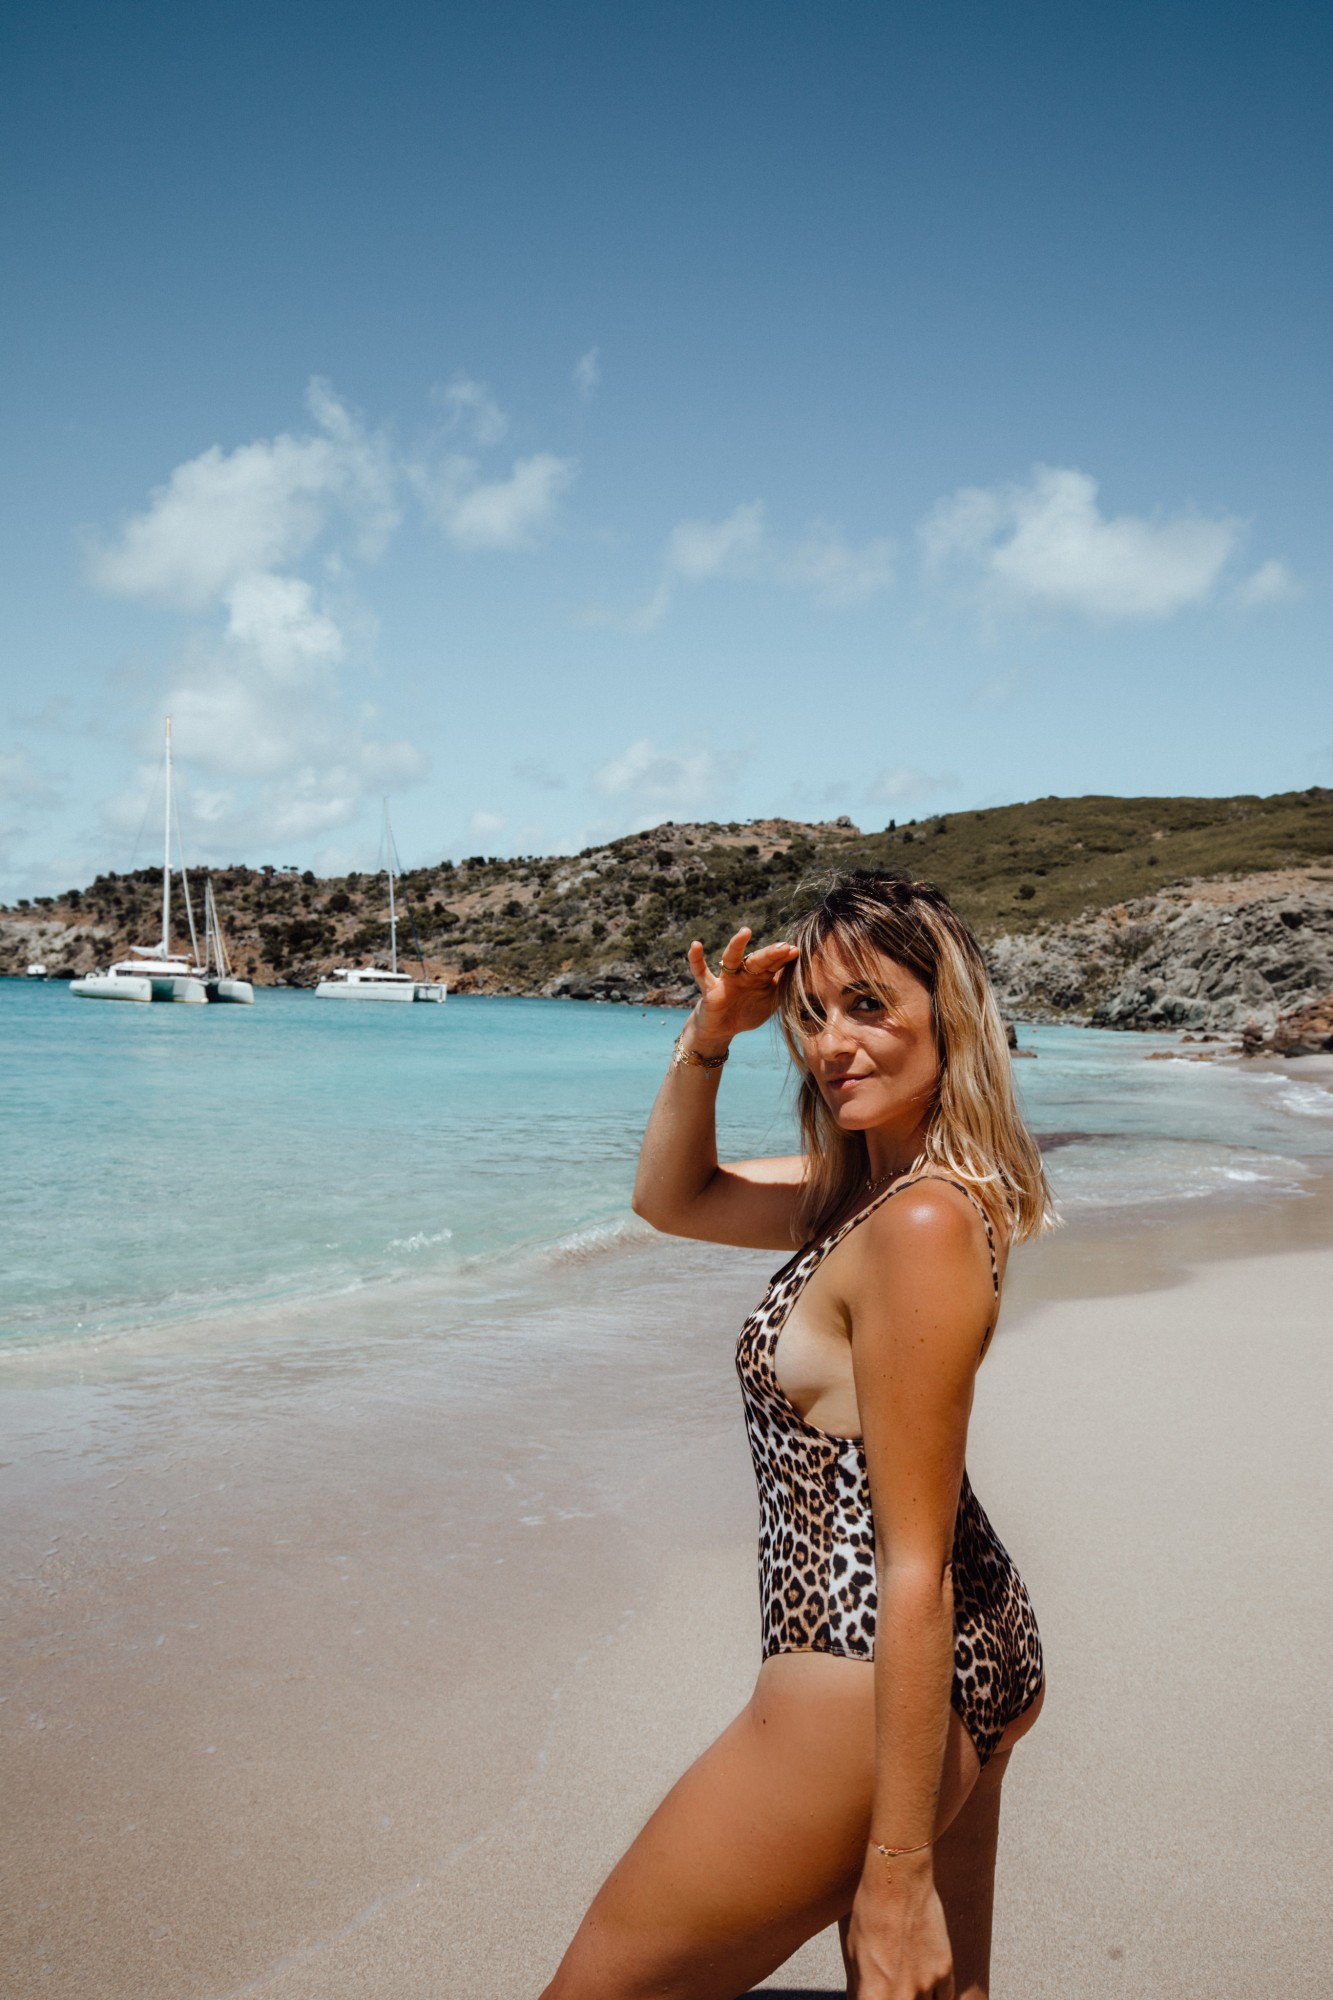 Plage de Colombier Saint Barth - Blondie Baby blog voyages